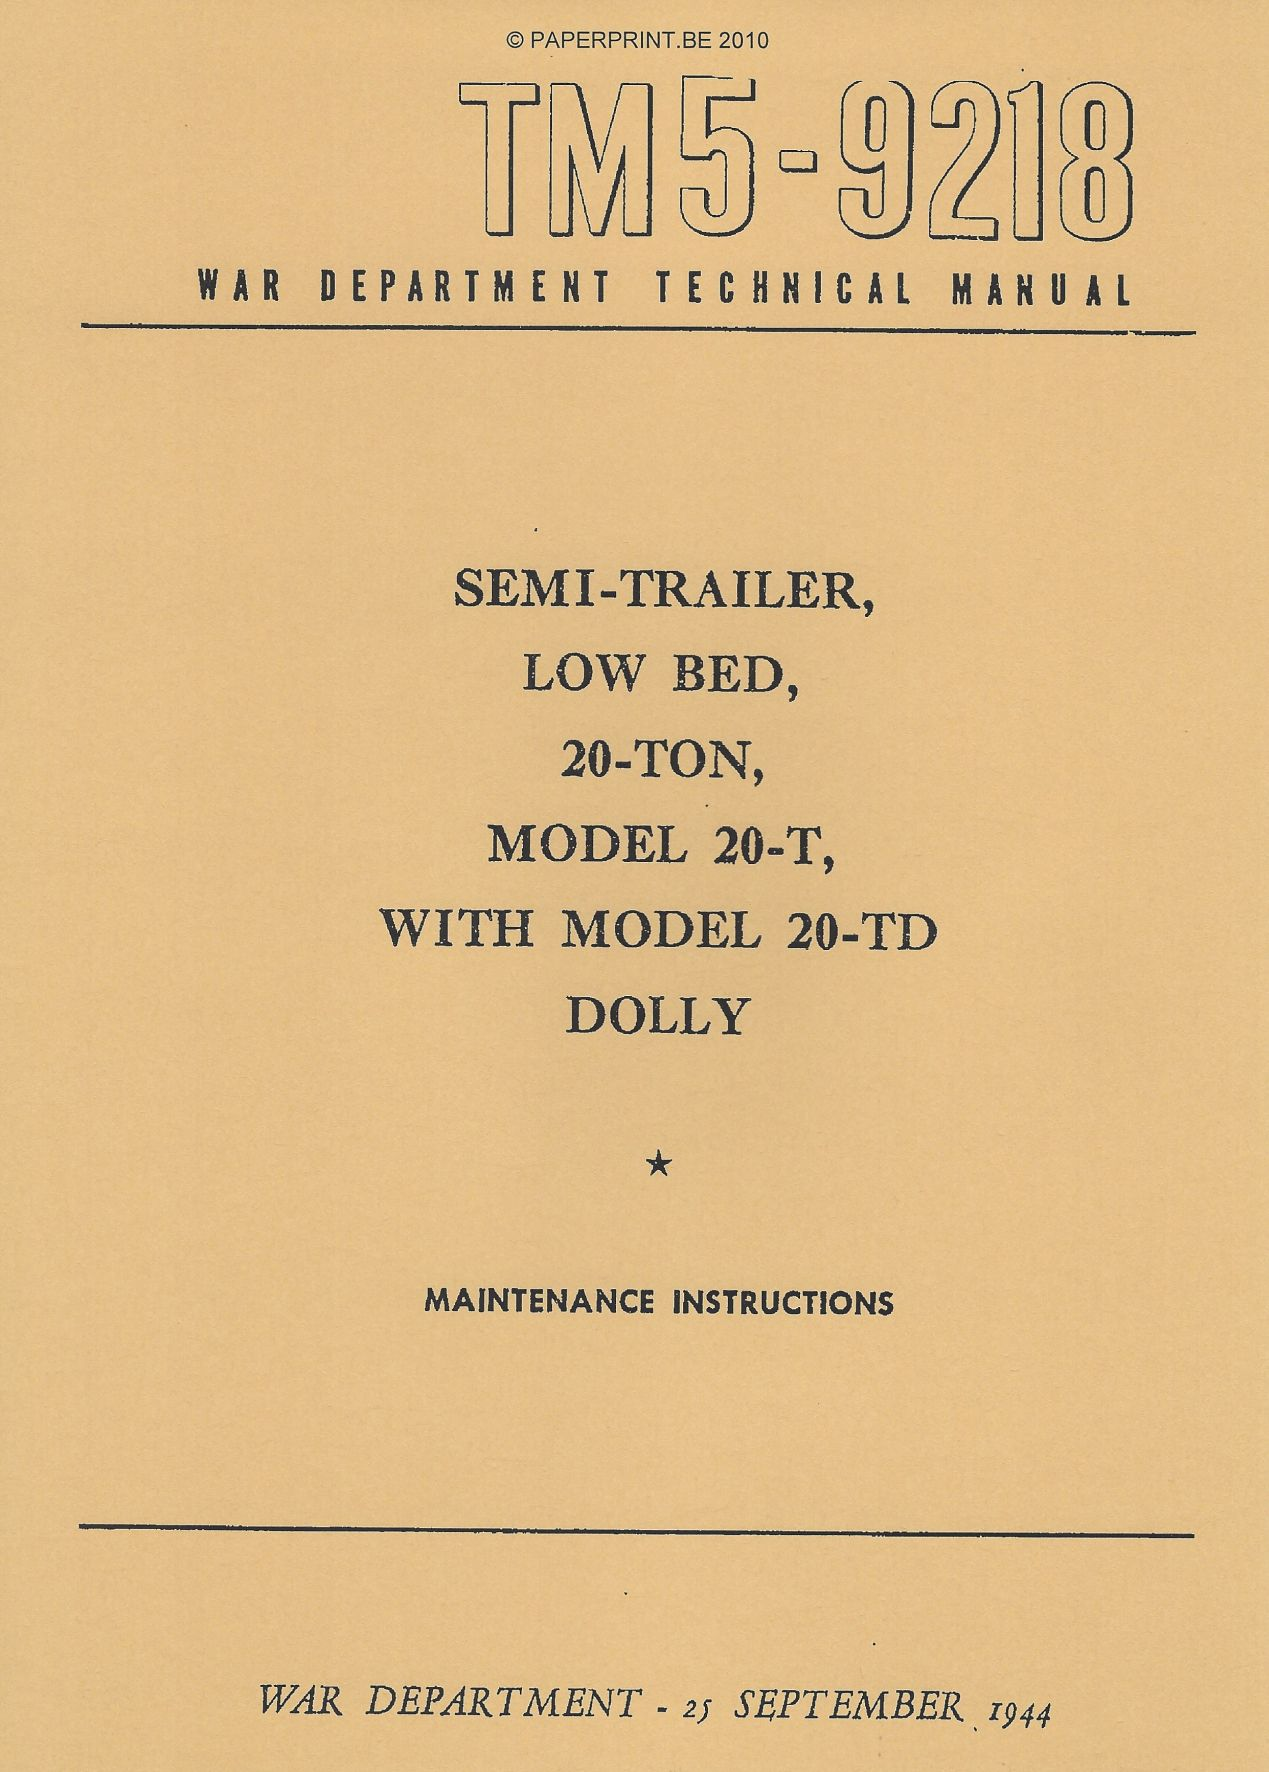 TM 5-9218 US SEMI-TRAILER, LOW BED, 20-TON, MODEL 20-T WITH MODEL 20-TD DOLLY